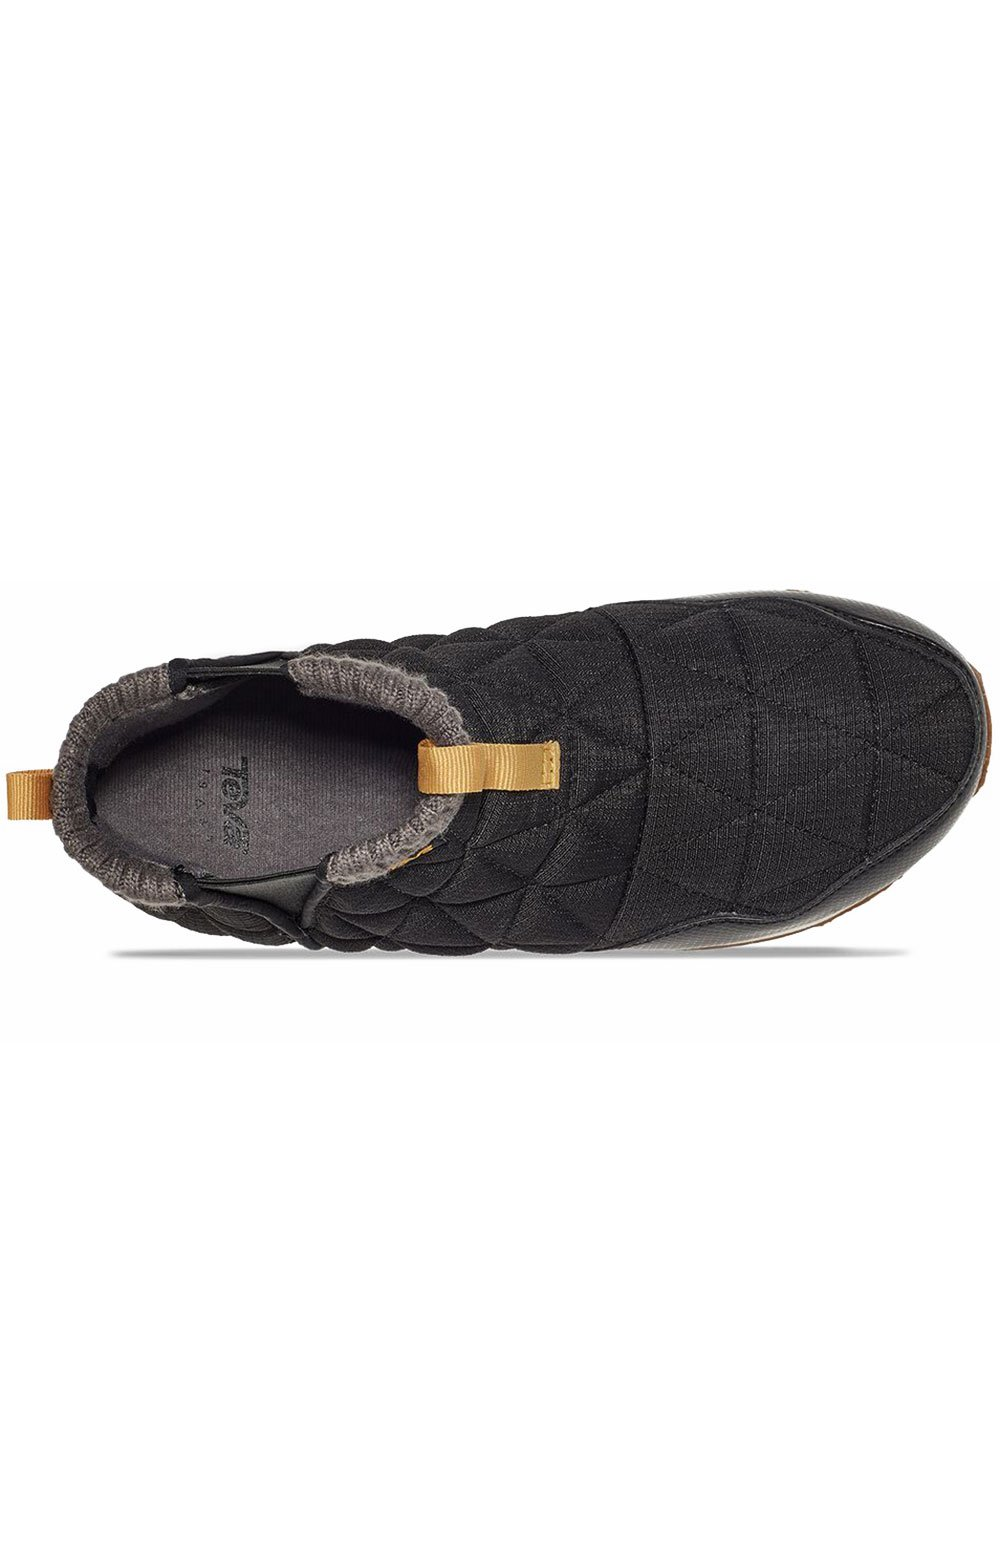 (1123431) ReEMBER Mid Shoes - Black 5